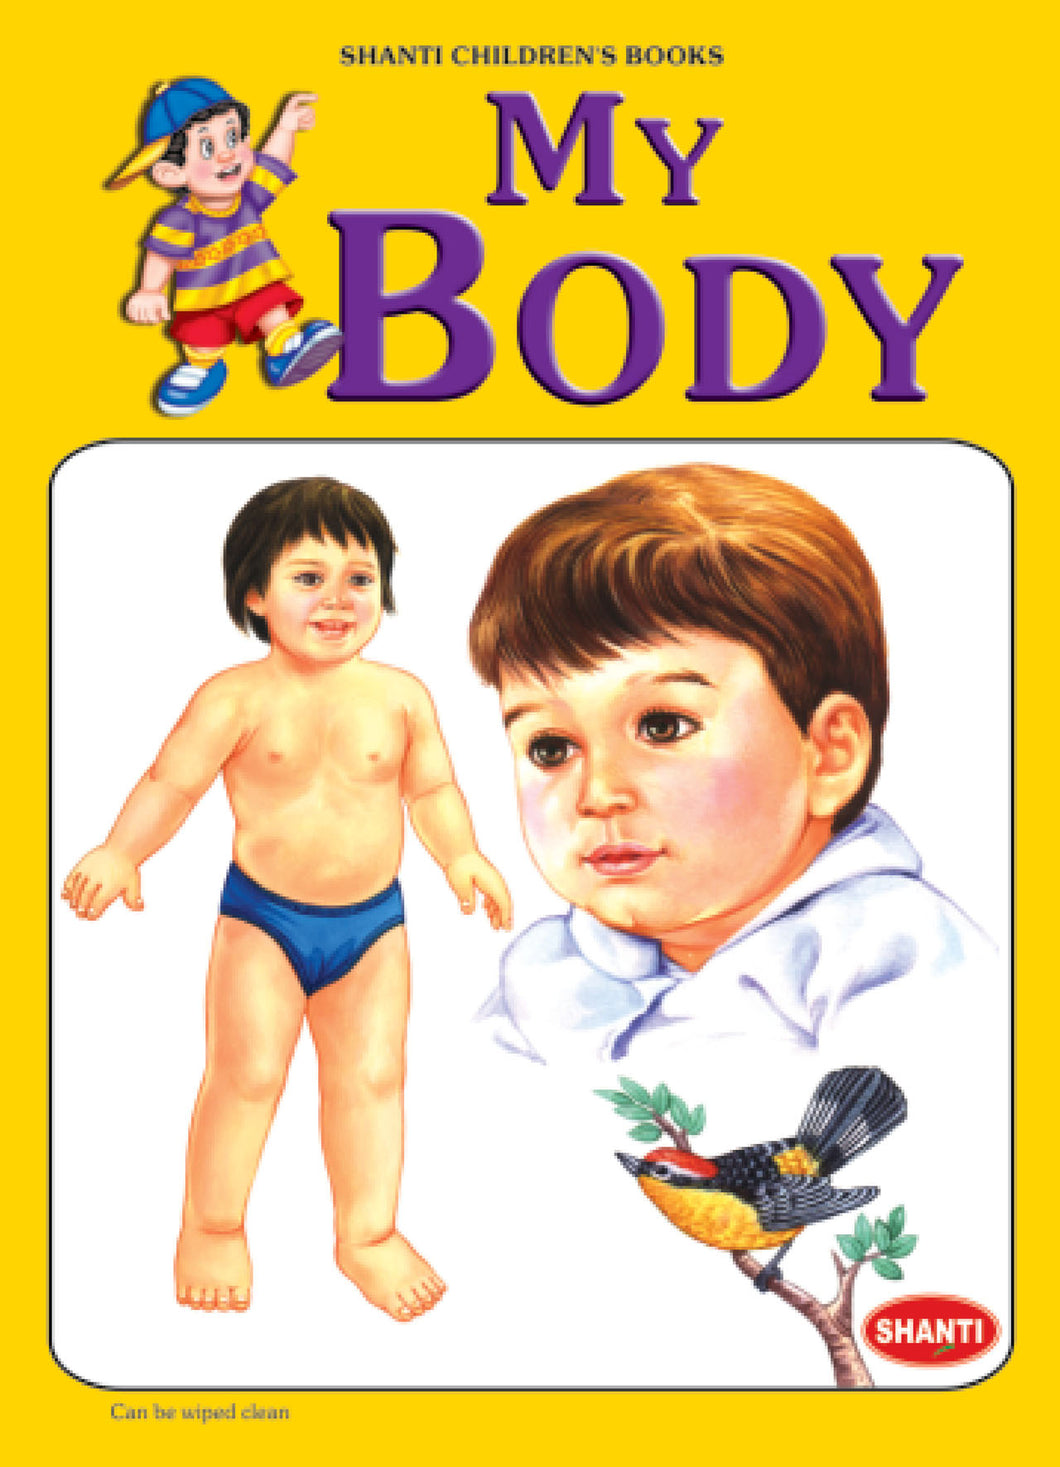 Picture Books for Kids 2 years-Plastic Series - My Body